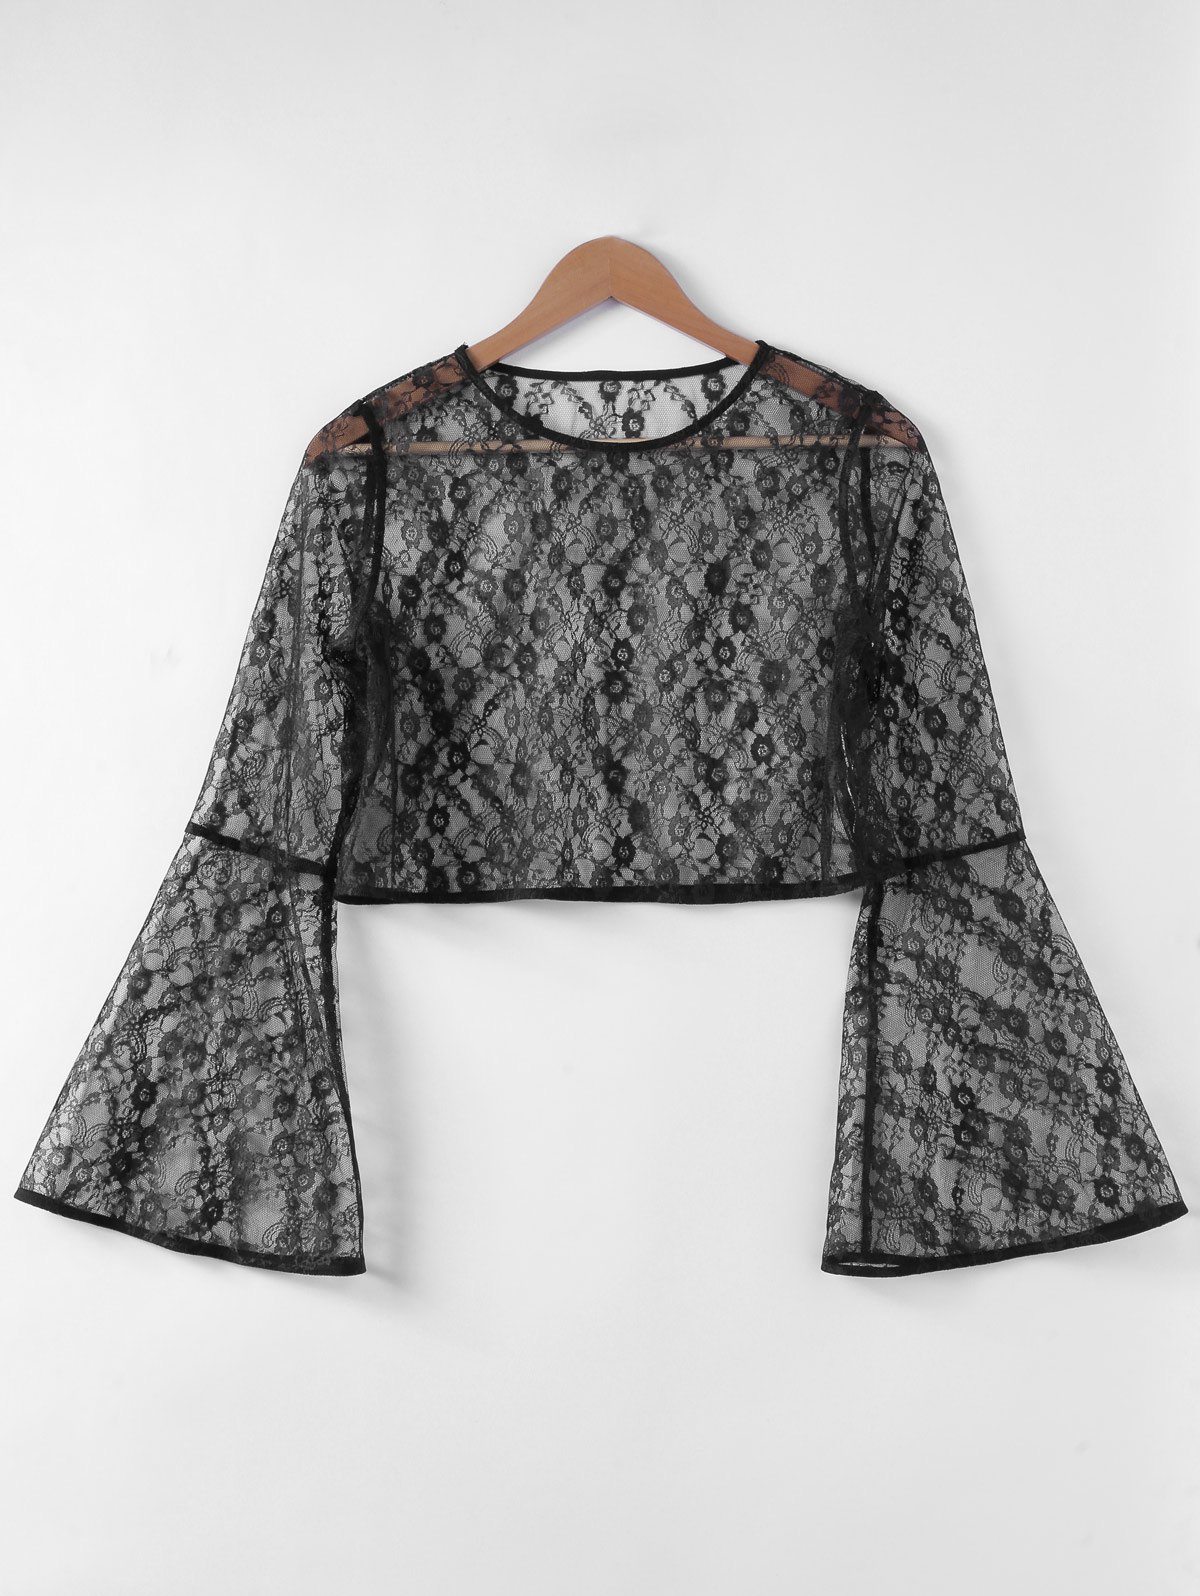 Stylish Trumpet Sleeve Hollow Out Top For Women